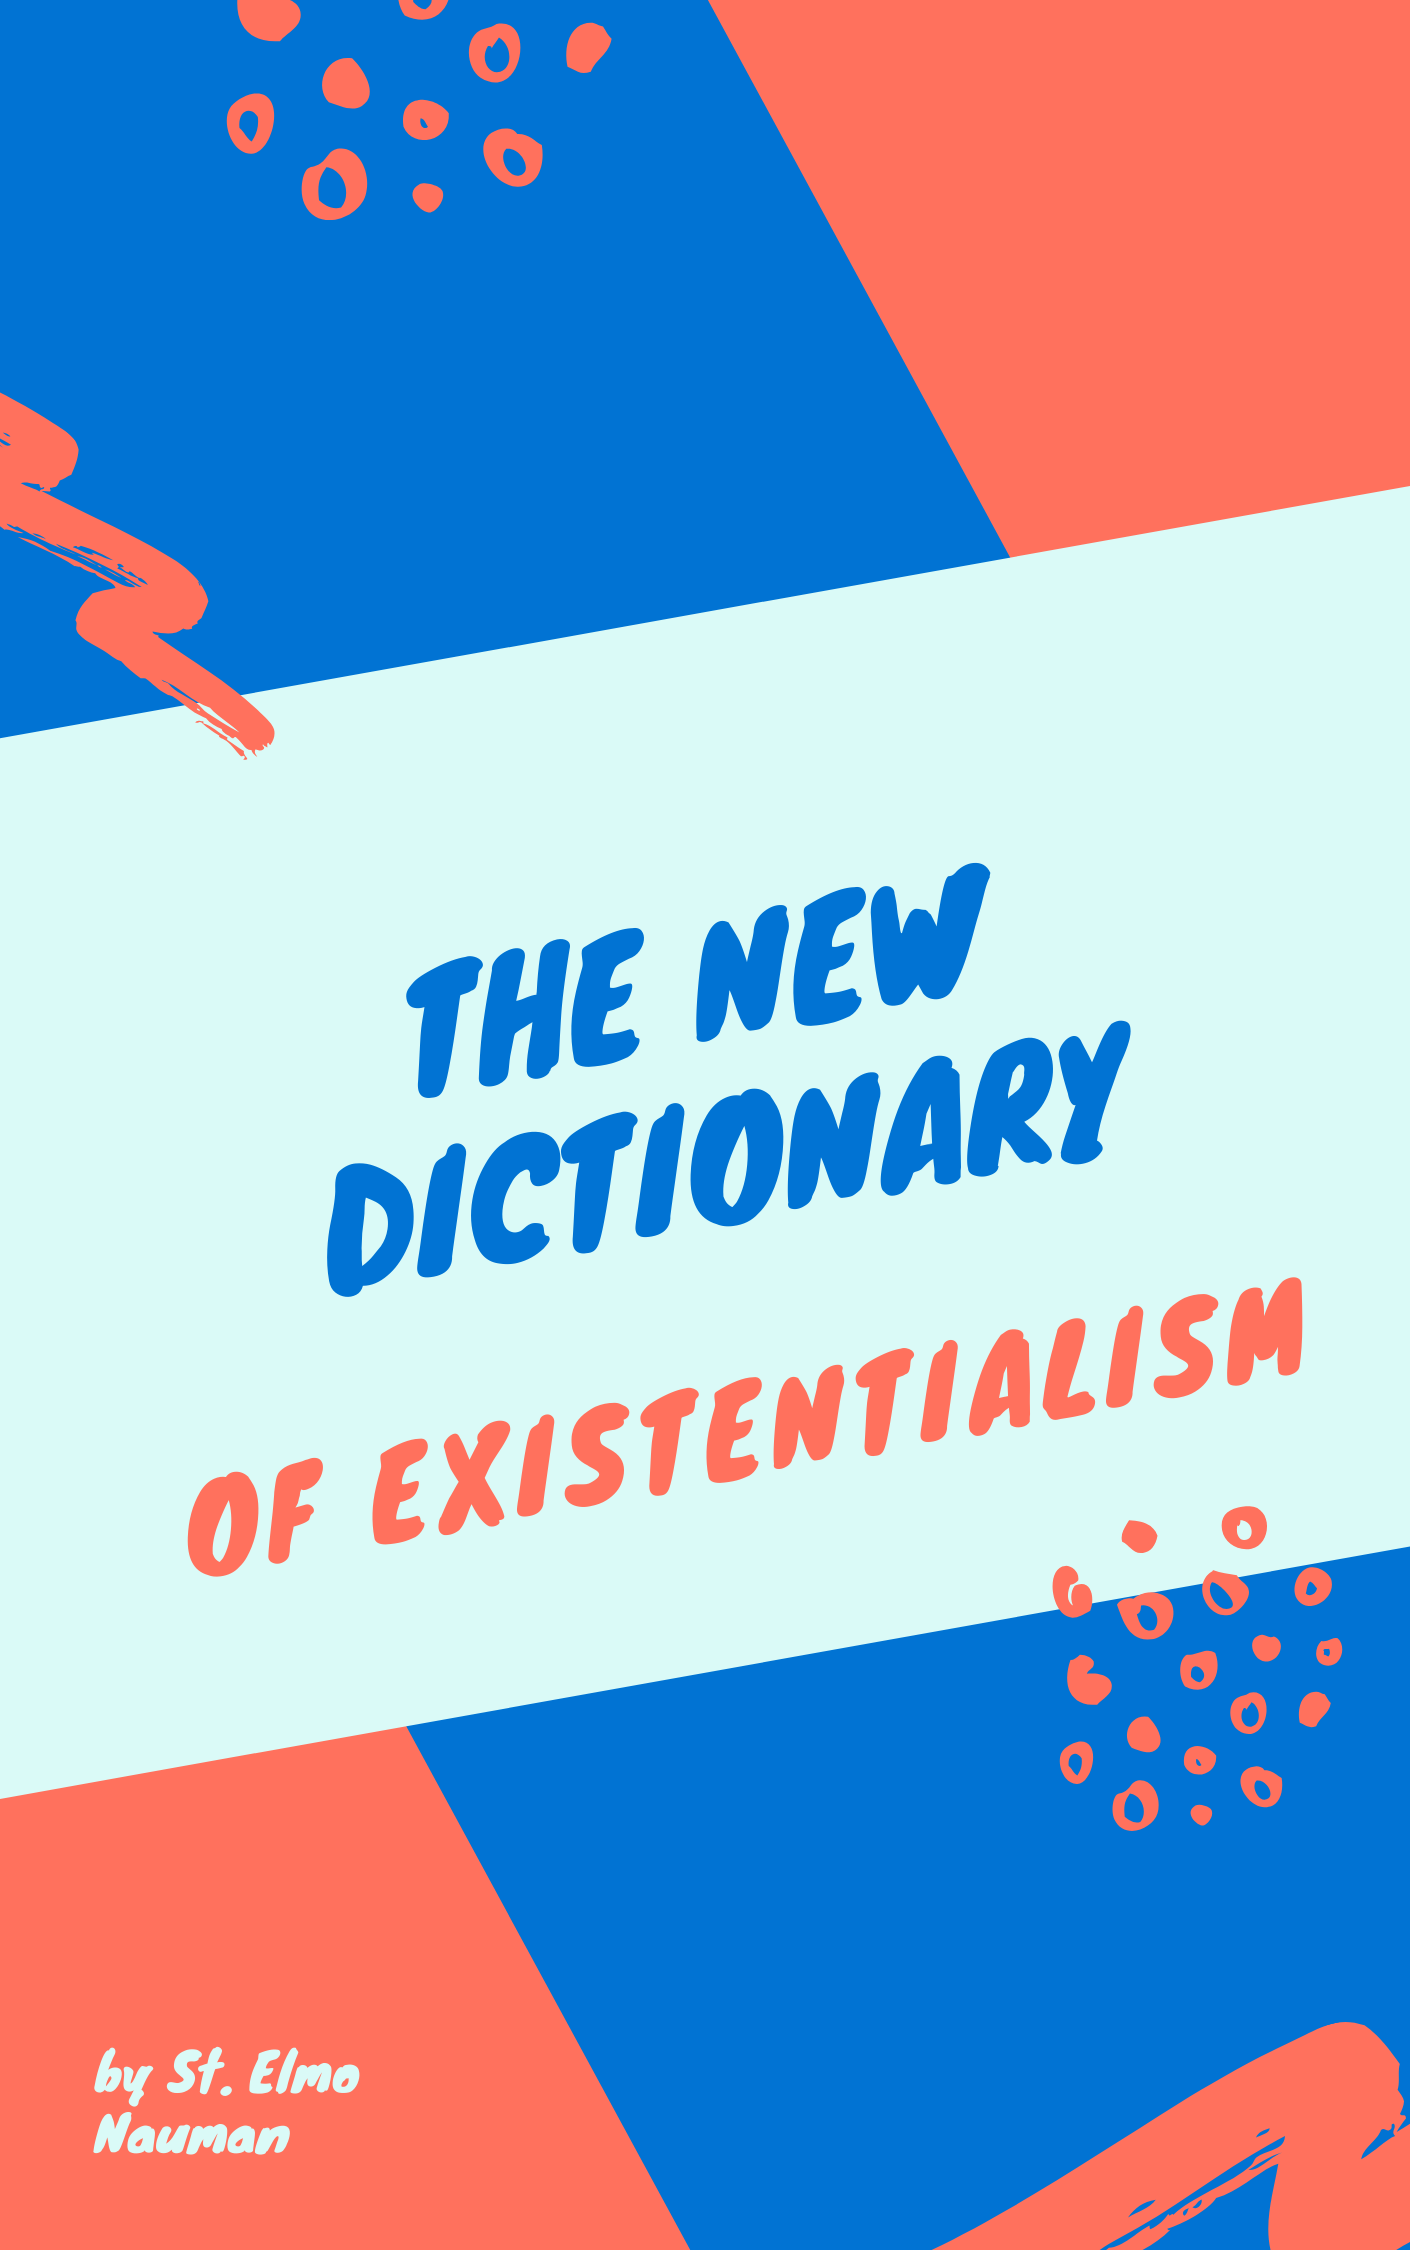 The New Dictionary of Existentialism